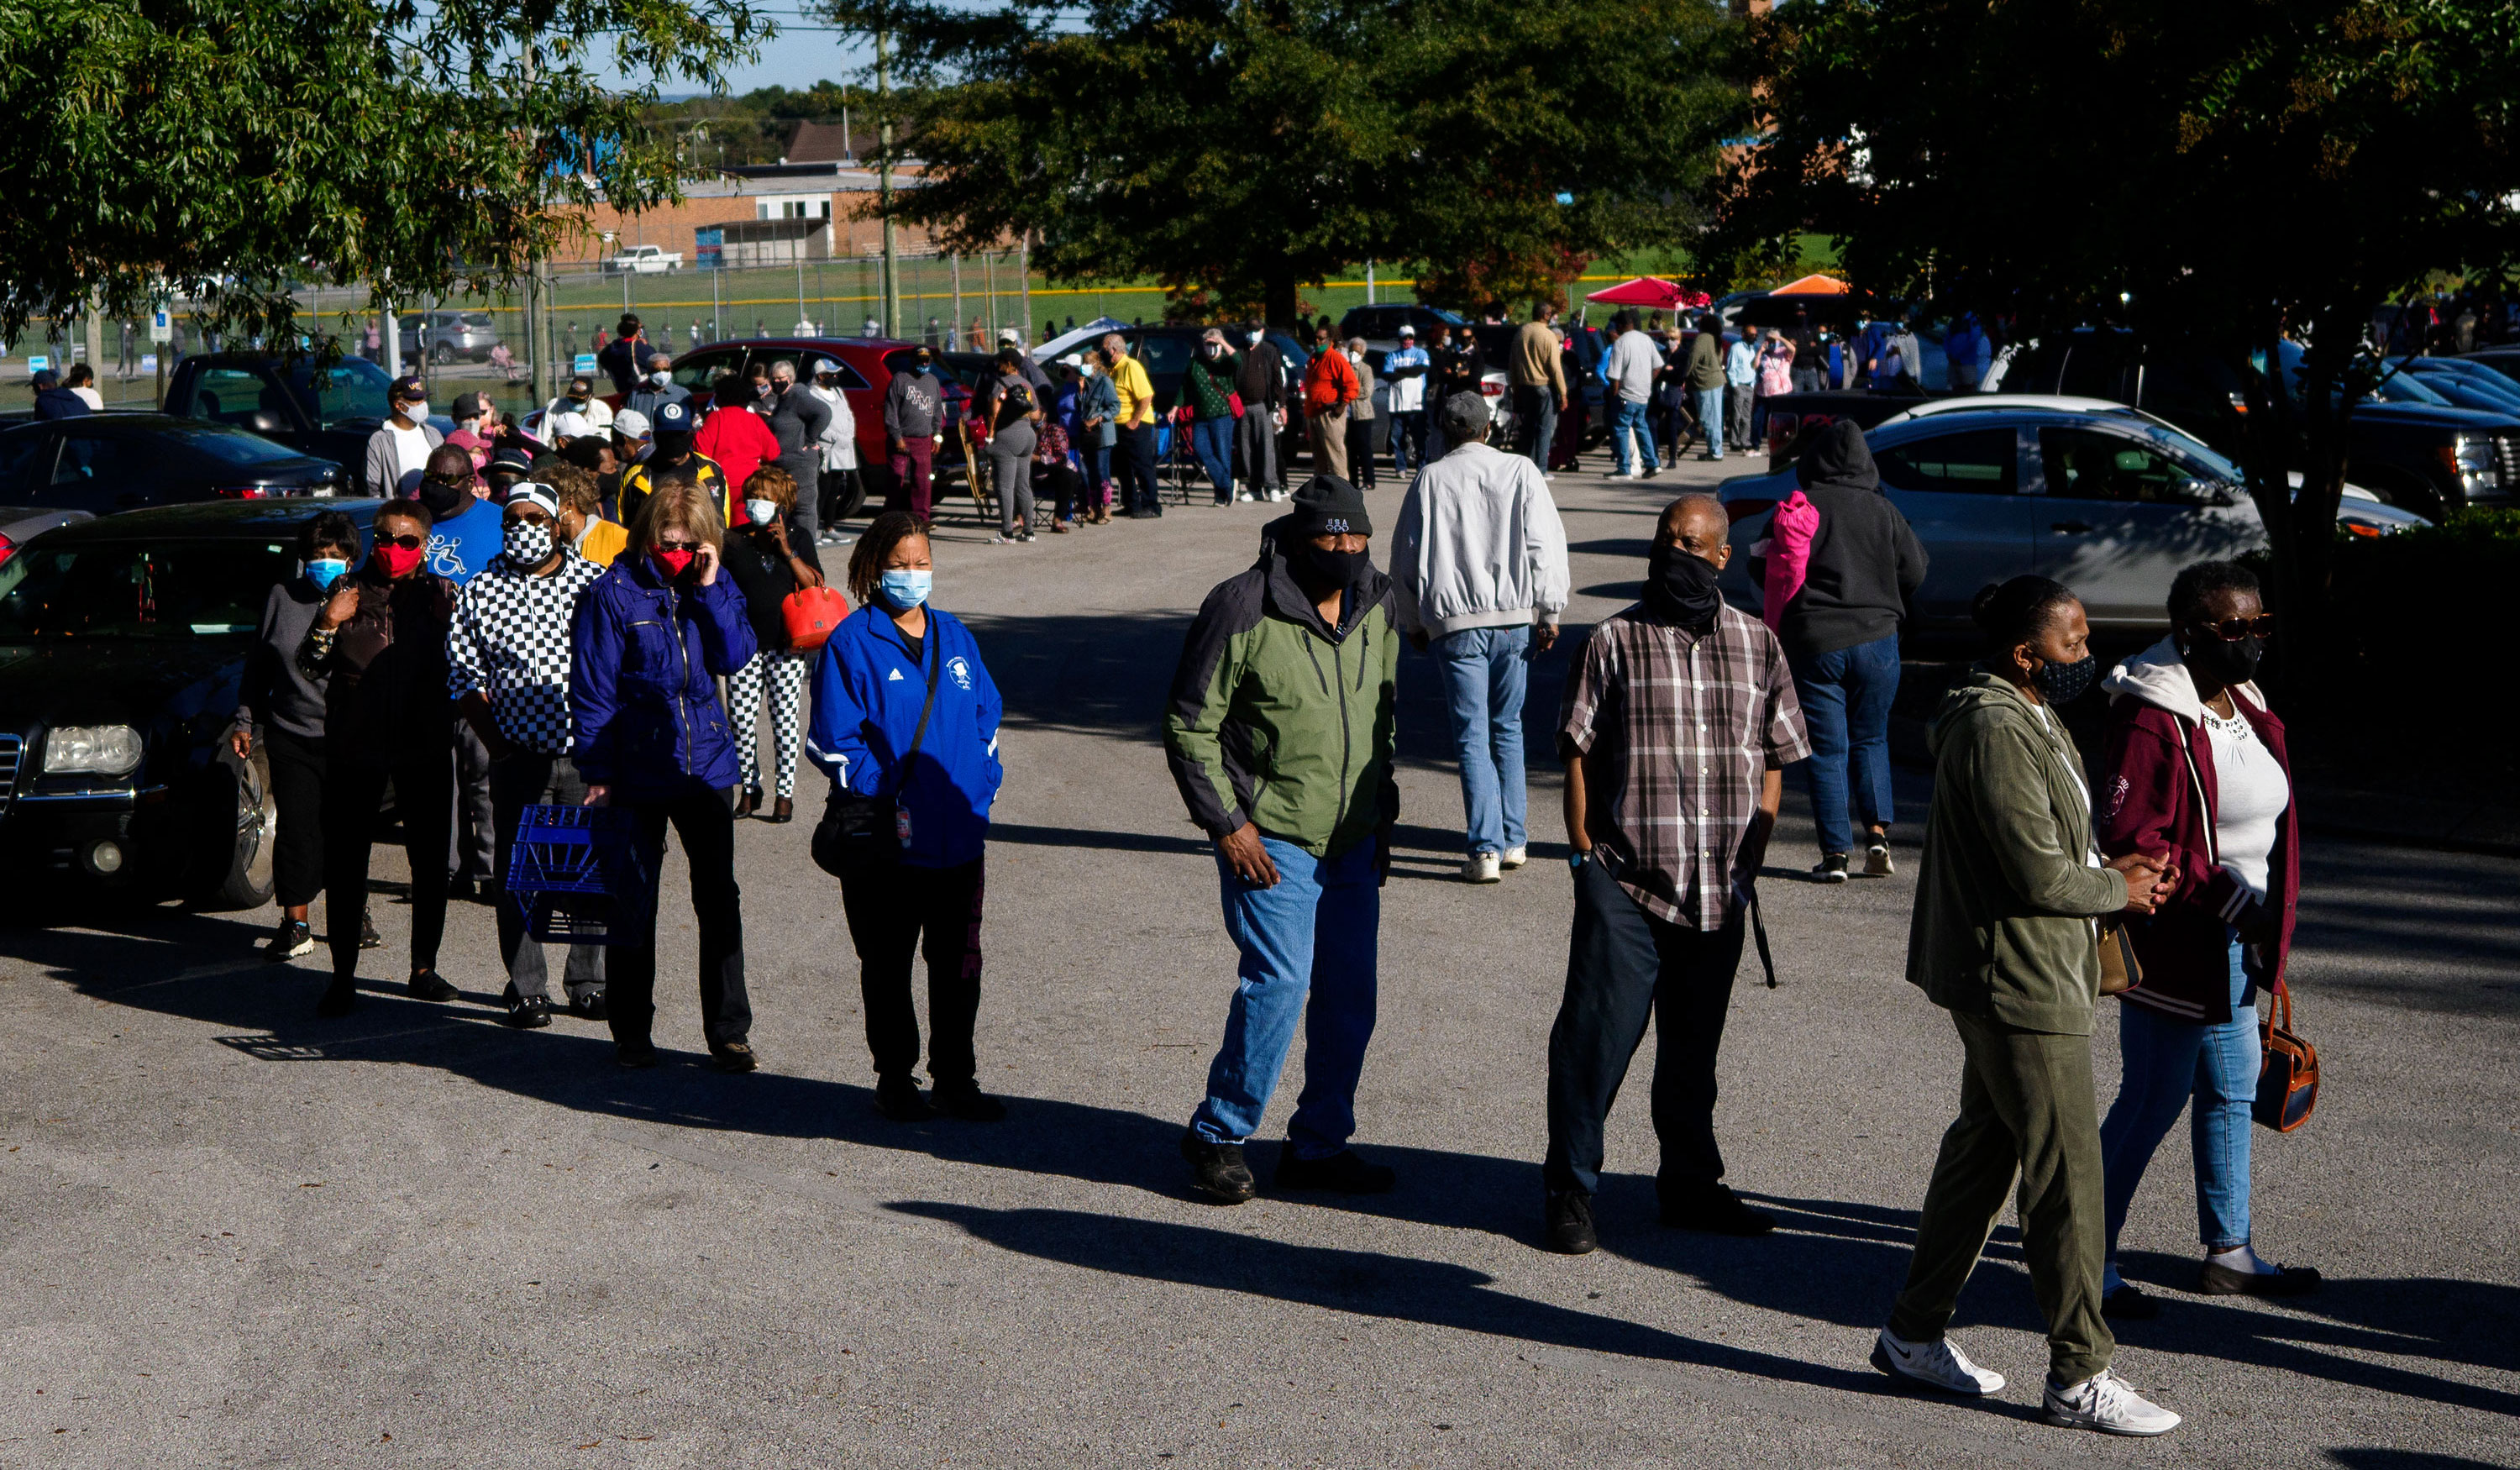 Voters wait to vote in Chattanooga, Tennessee, on Wednesday, October 14. Early voting opened in Tennessee on Wednesday, and some people said they waited 90 minutes to just reach the entrance.